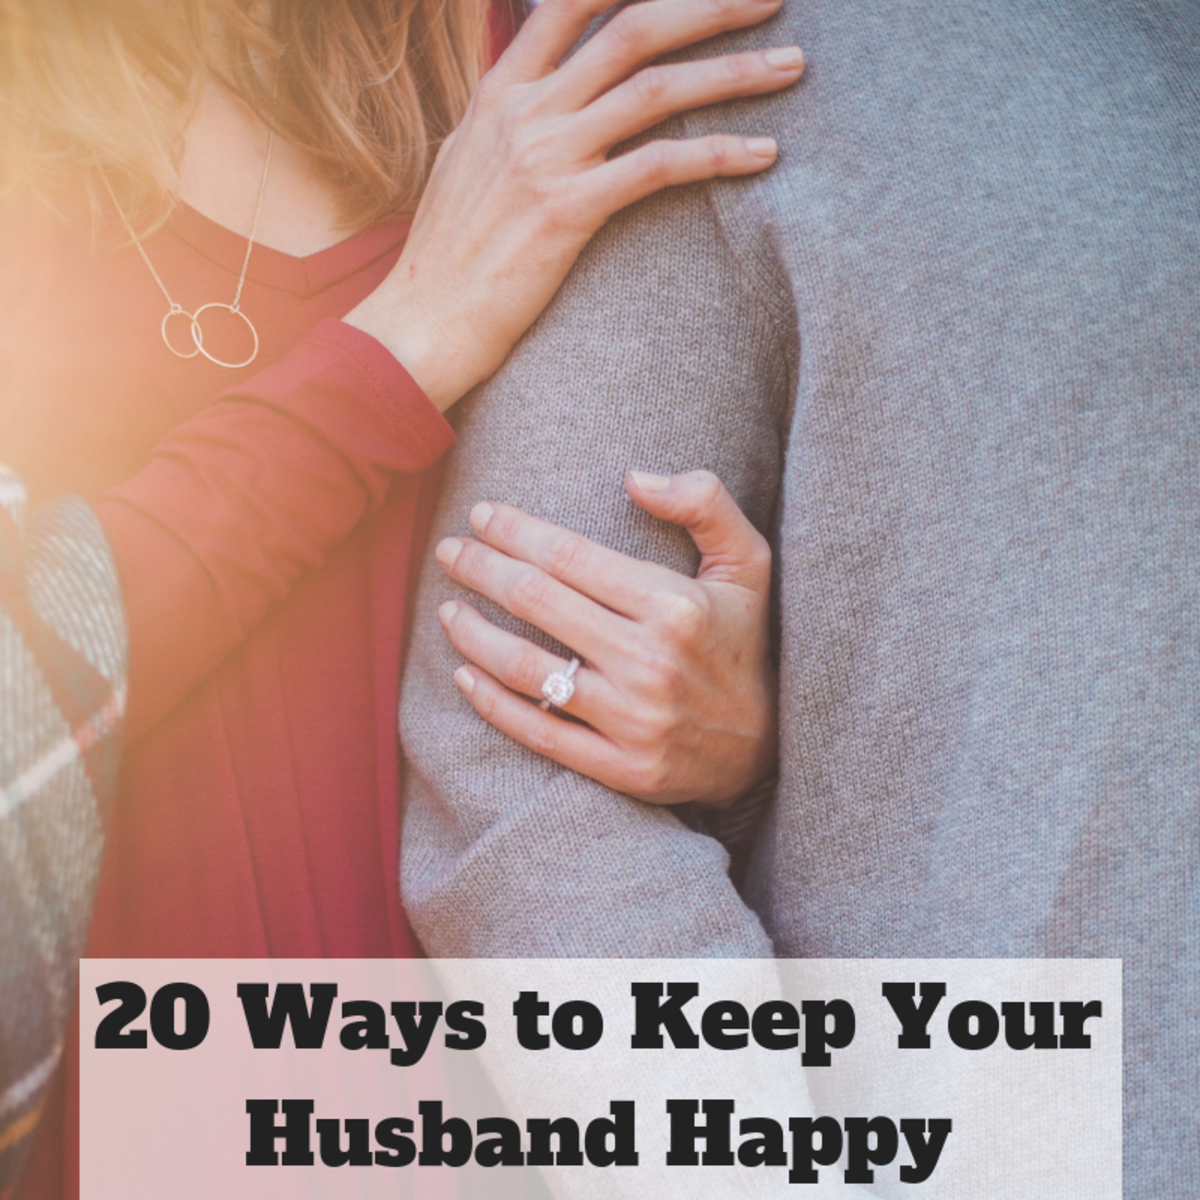 Use these methods to keep your husband happy and your marriage full of love.